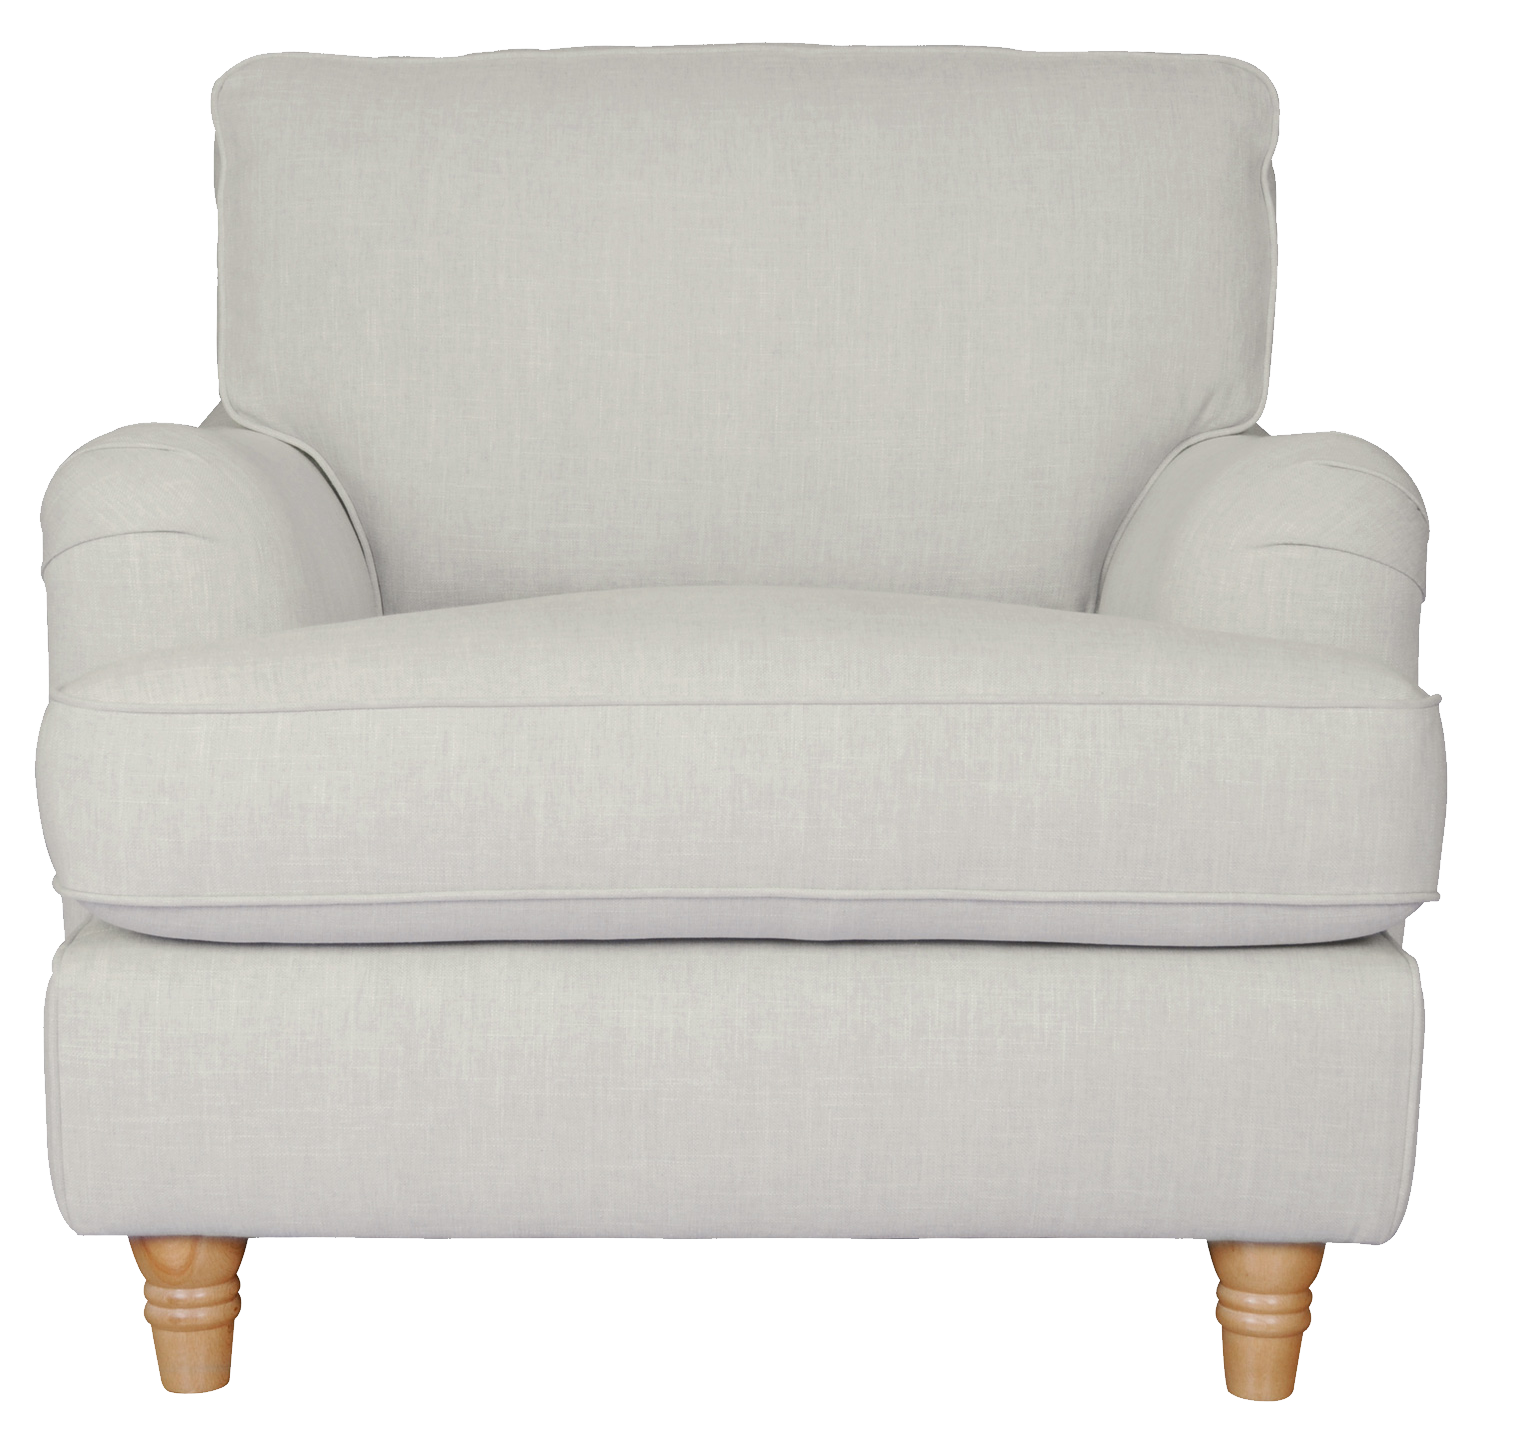 White Armchair Png Image - Armchair, Transparent background PNG HD thumbnail